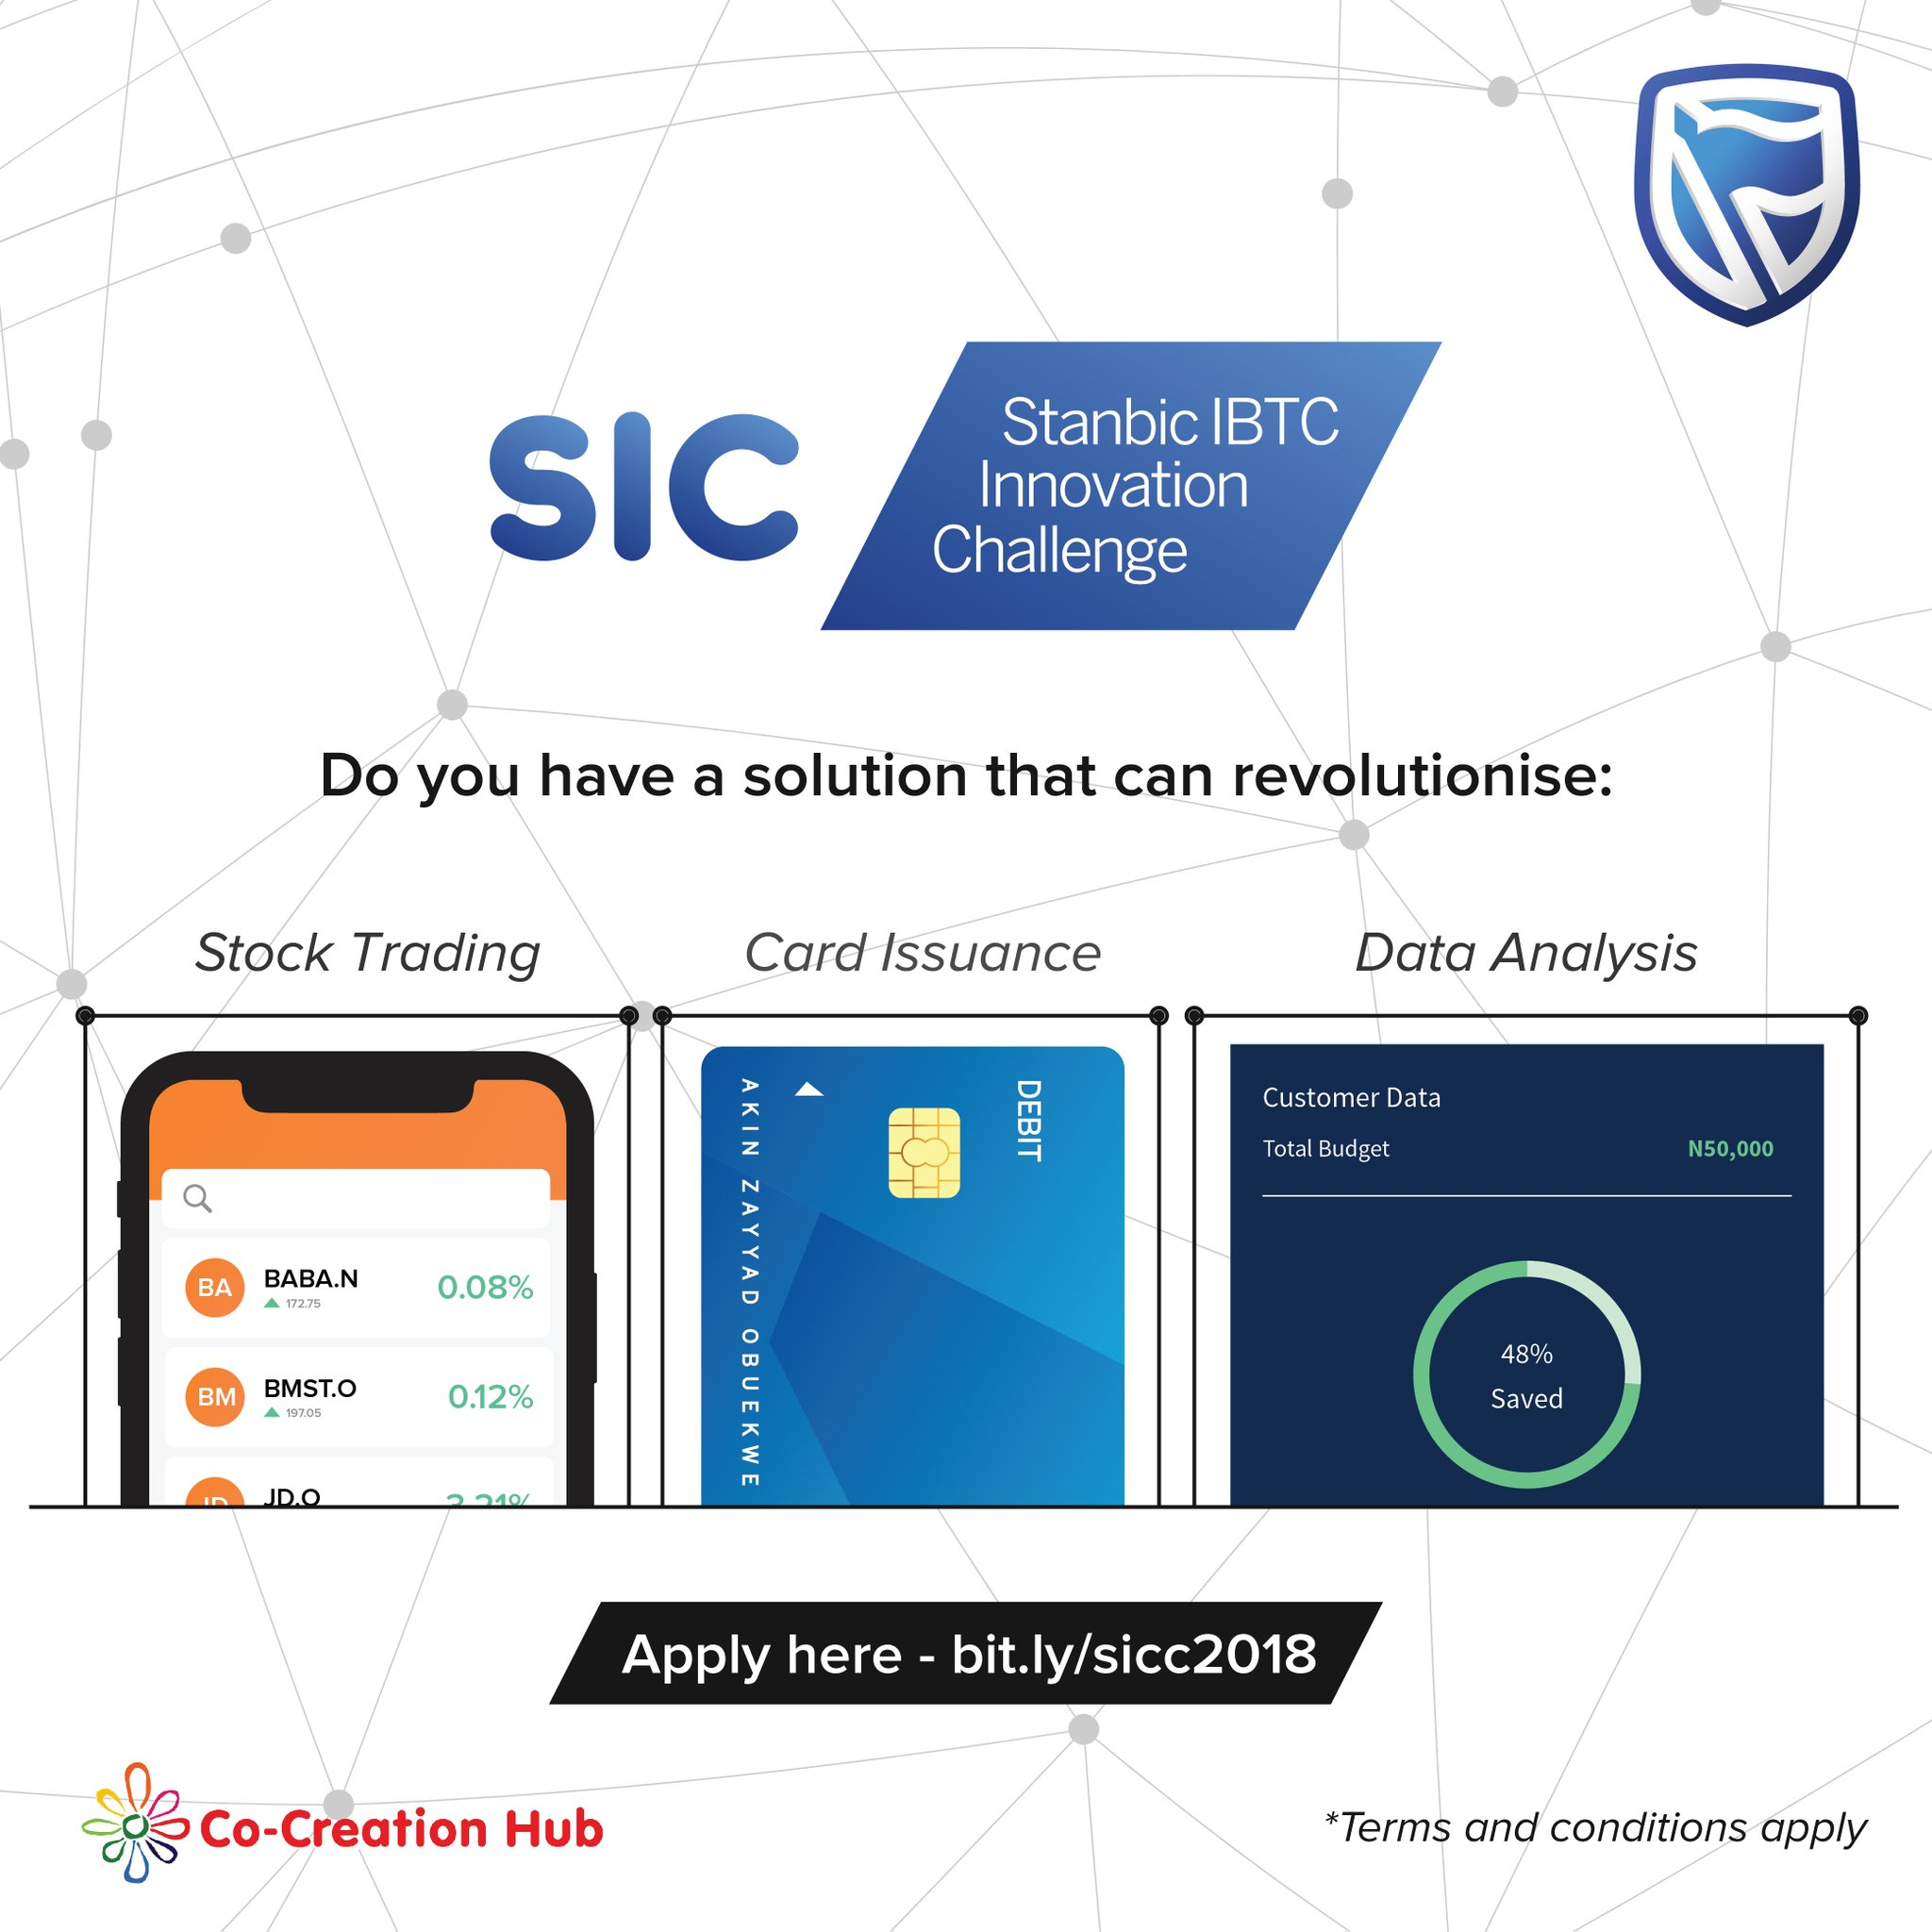 Stanbic IBTC Innovation Challenge